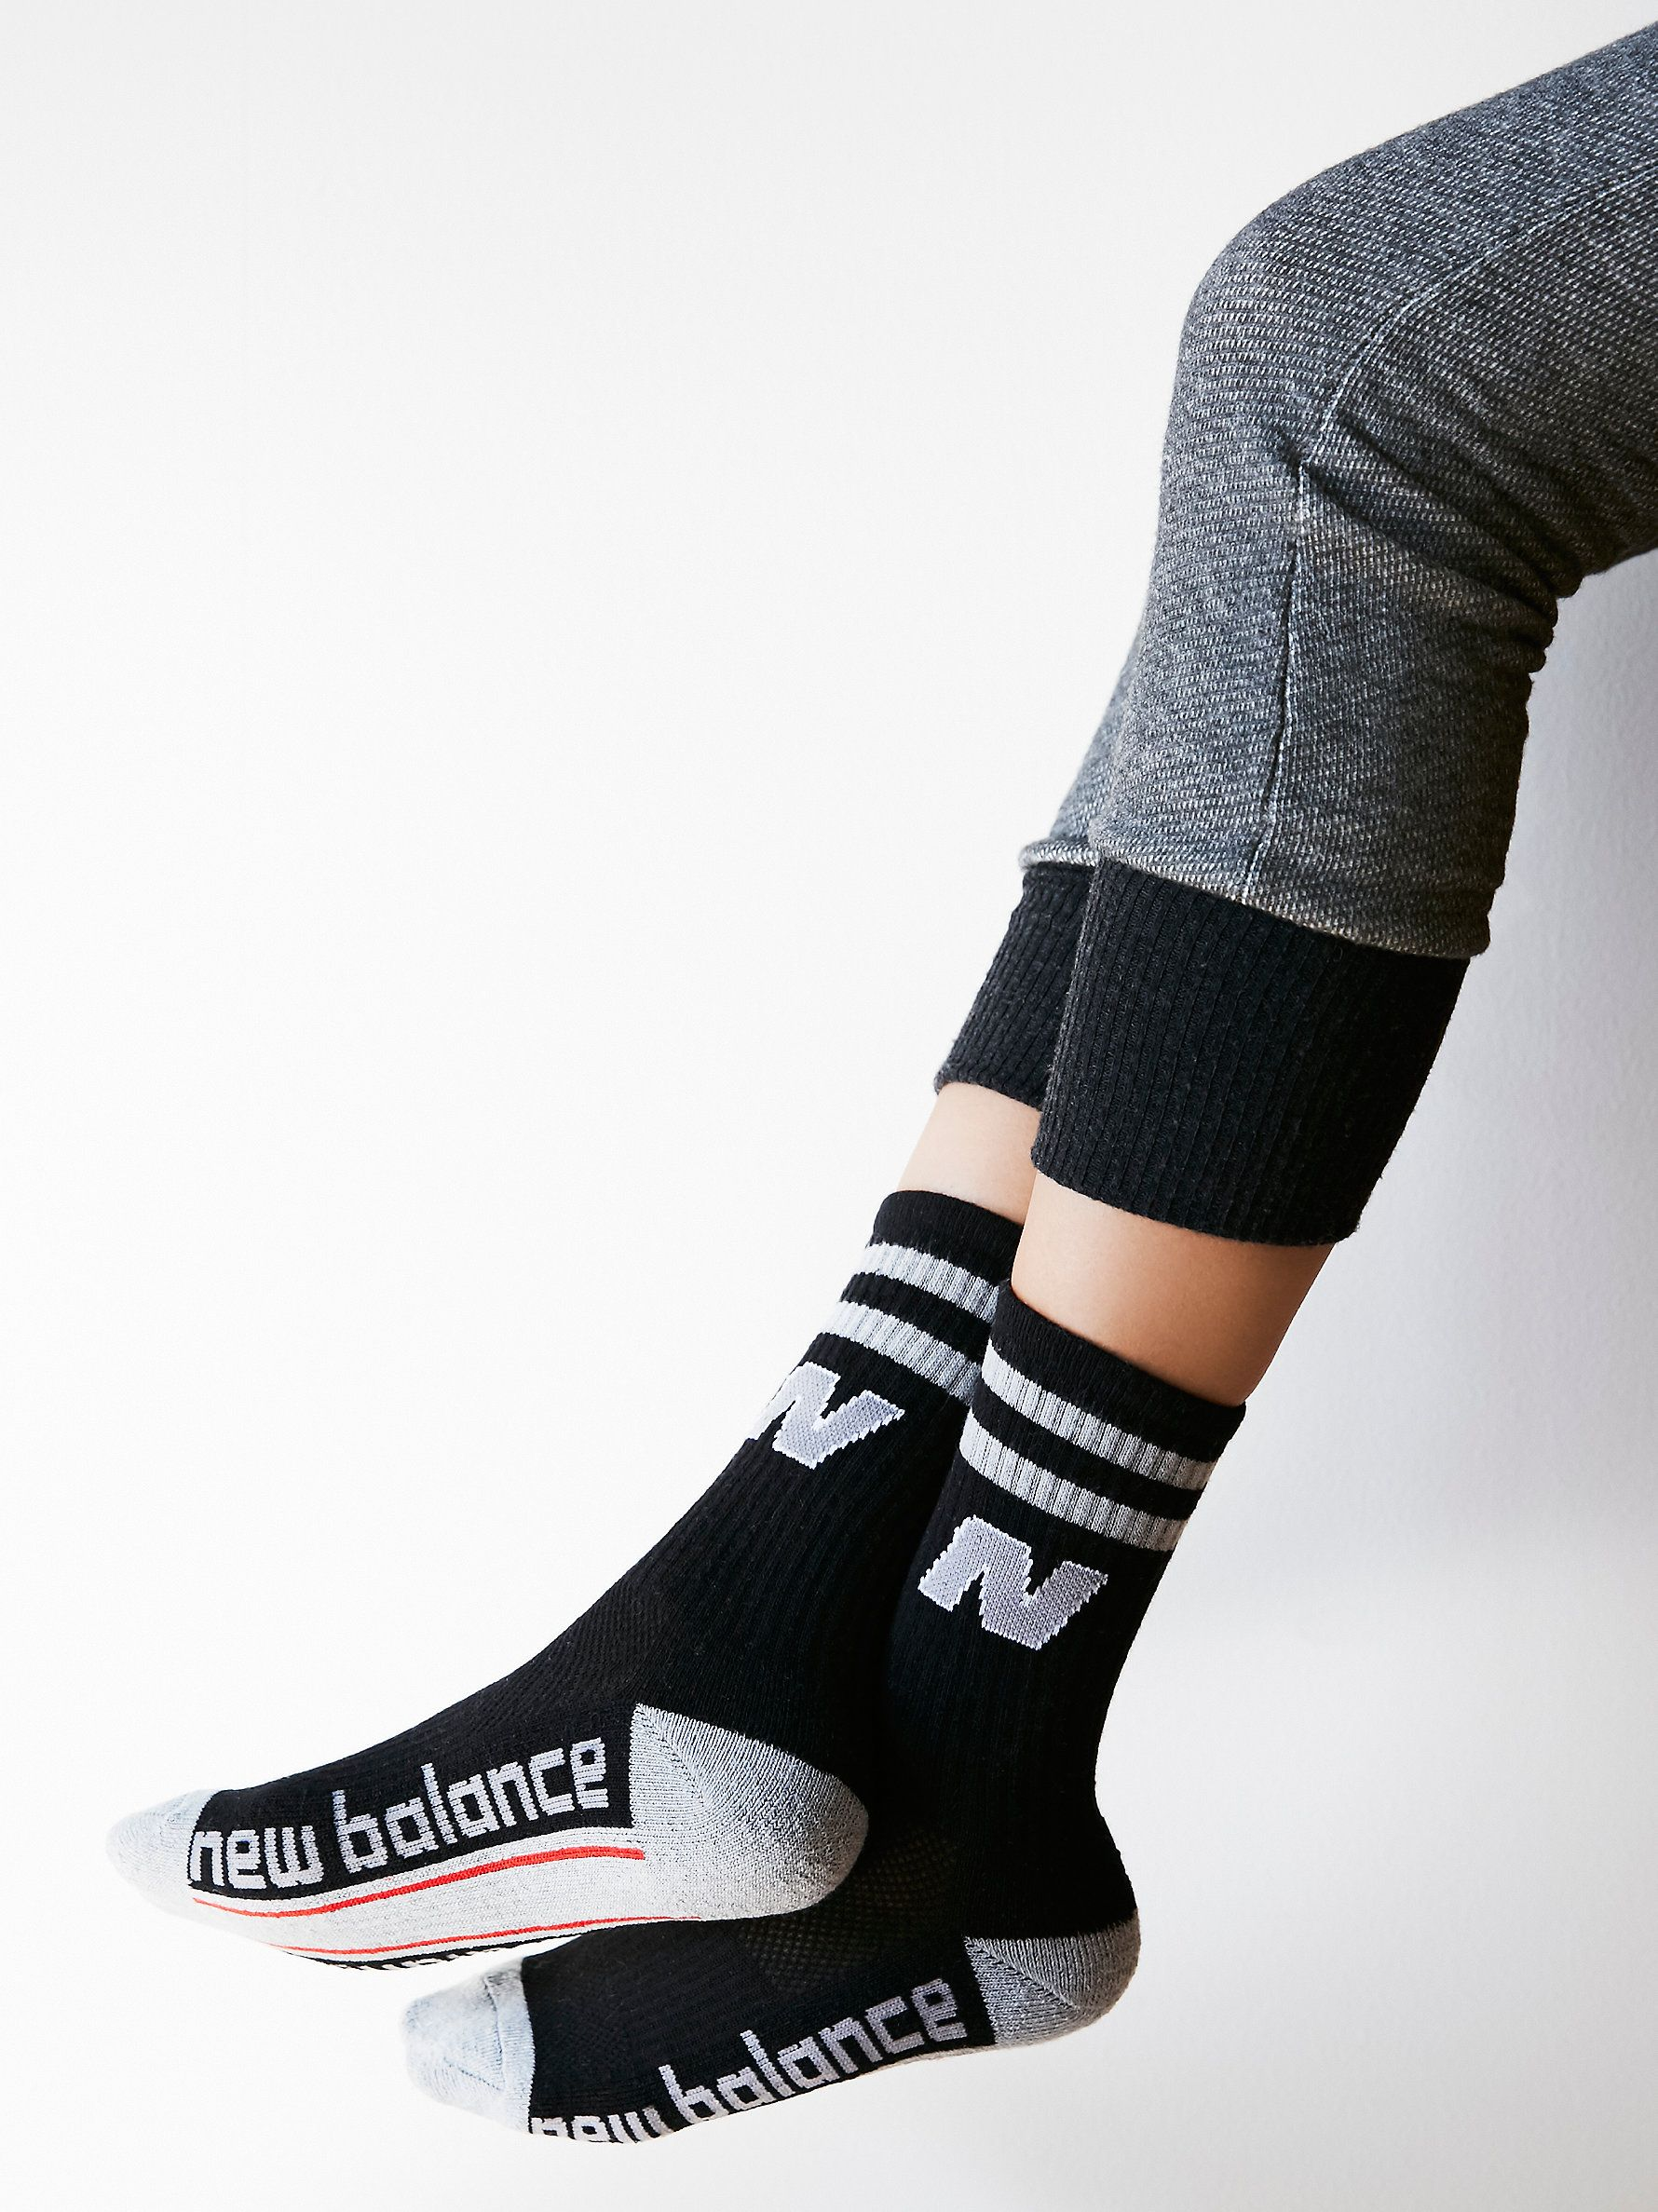 Classic New Balance Sock | Arch support